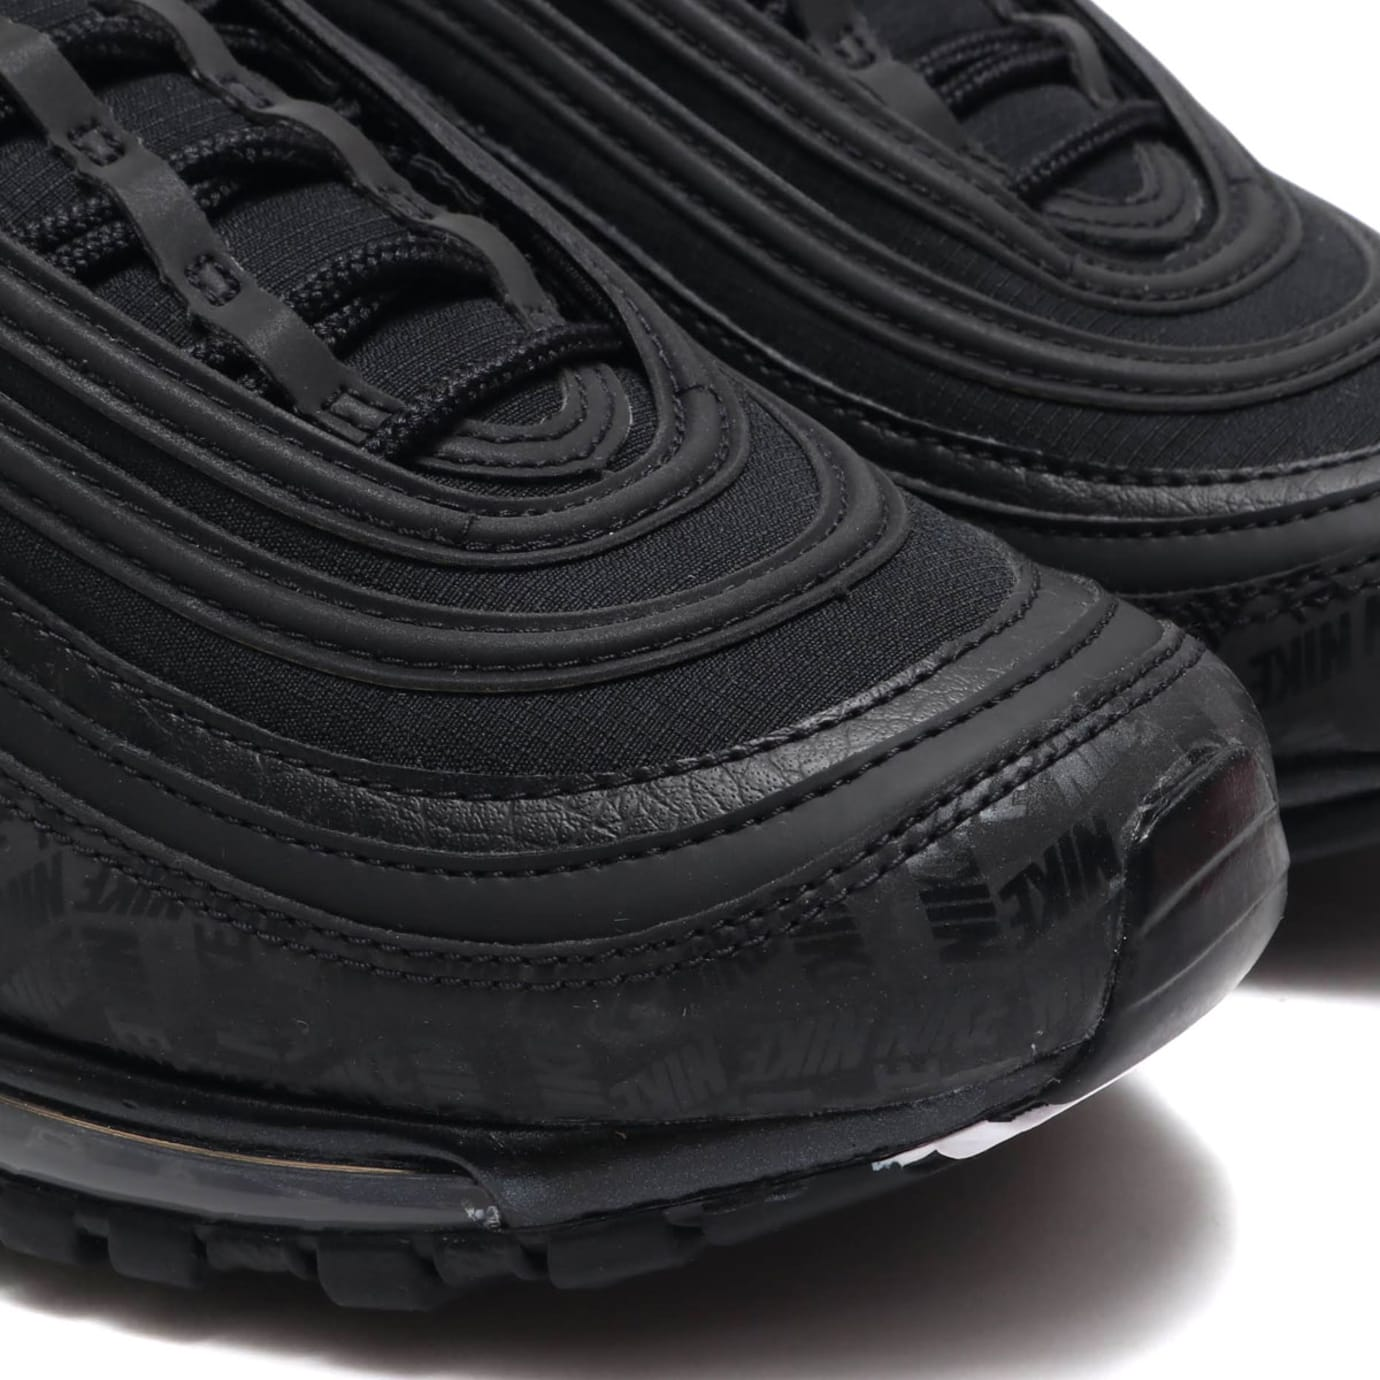 Nike Air Max 97 Black/University Red-Black AR4259-001 (Detail)